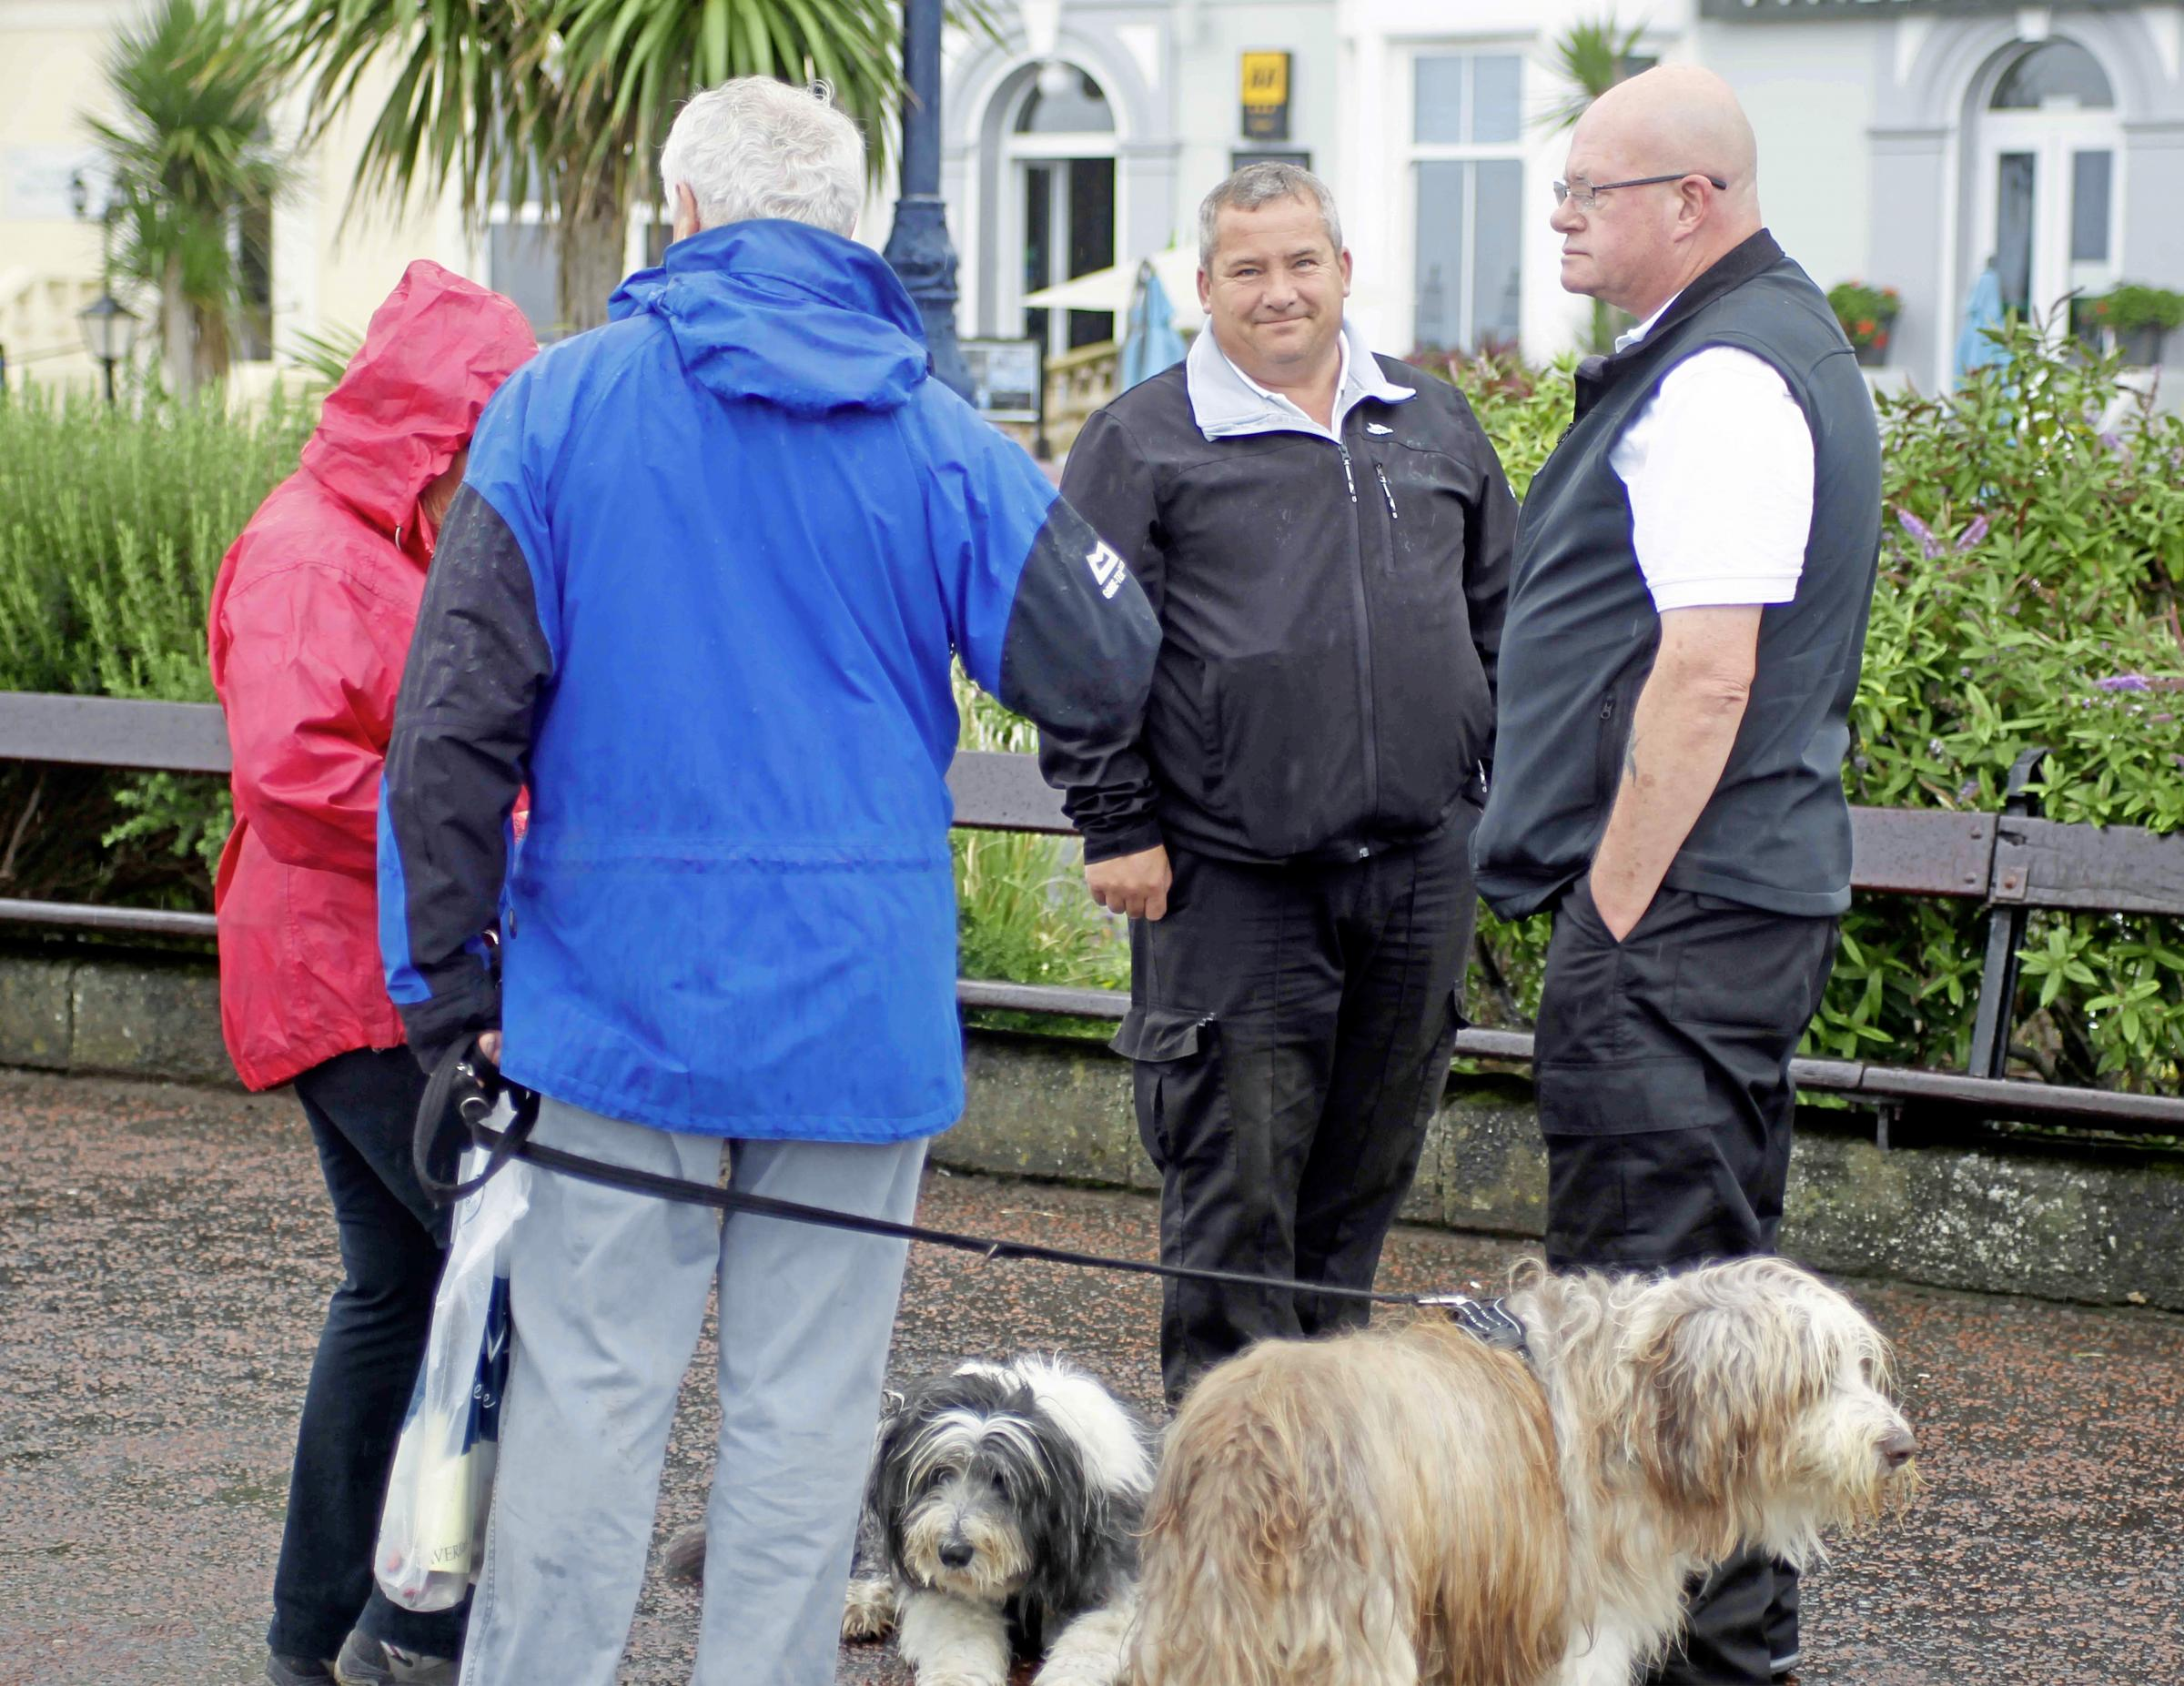 Kingdom security workers talking to protestors in Llandudno last year. Picture: David Thomas